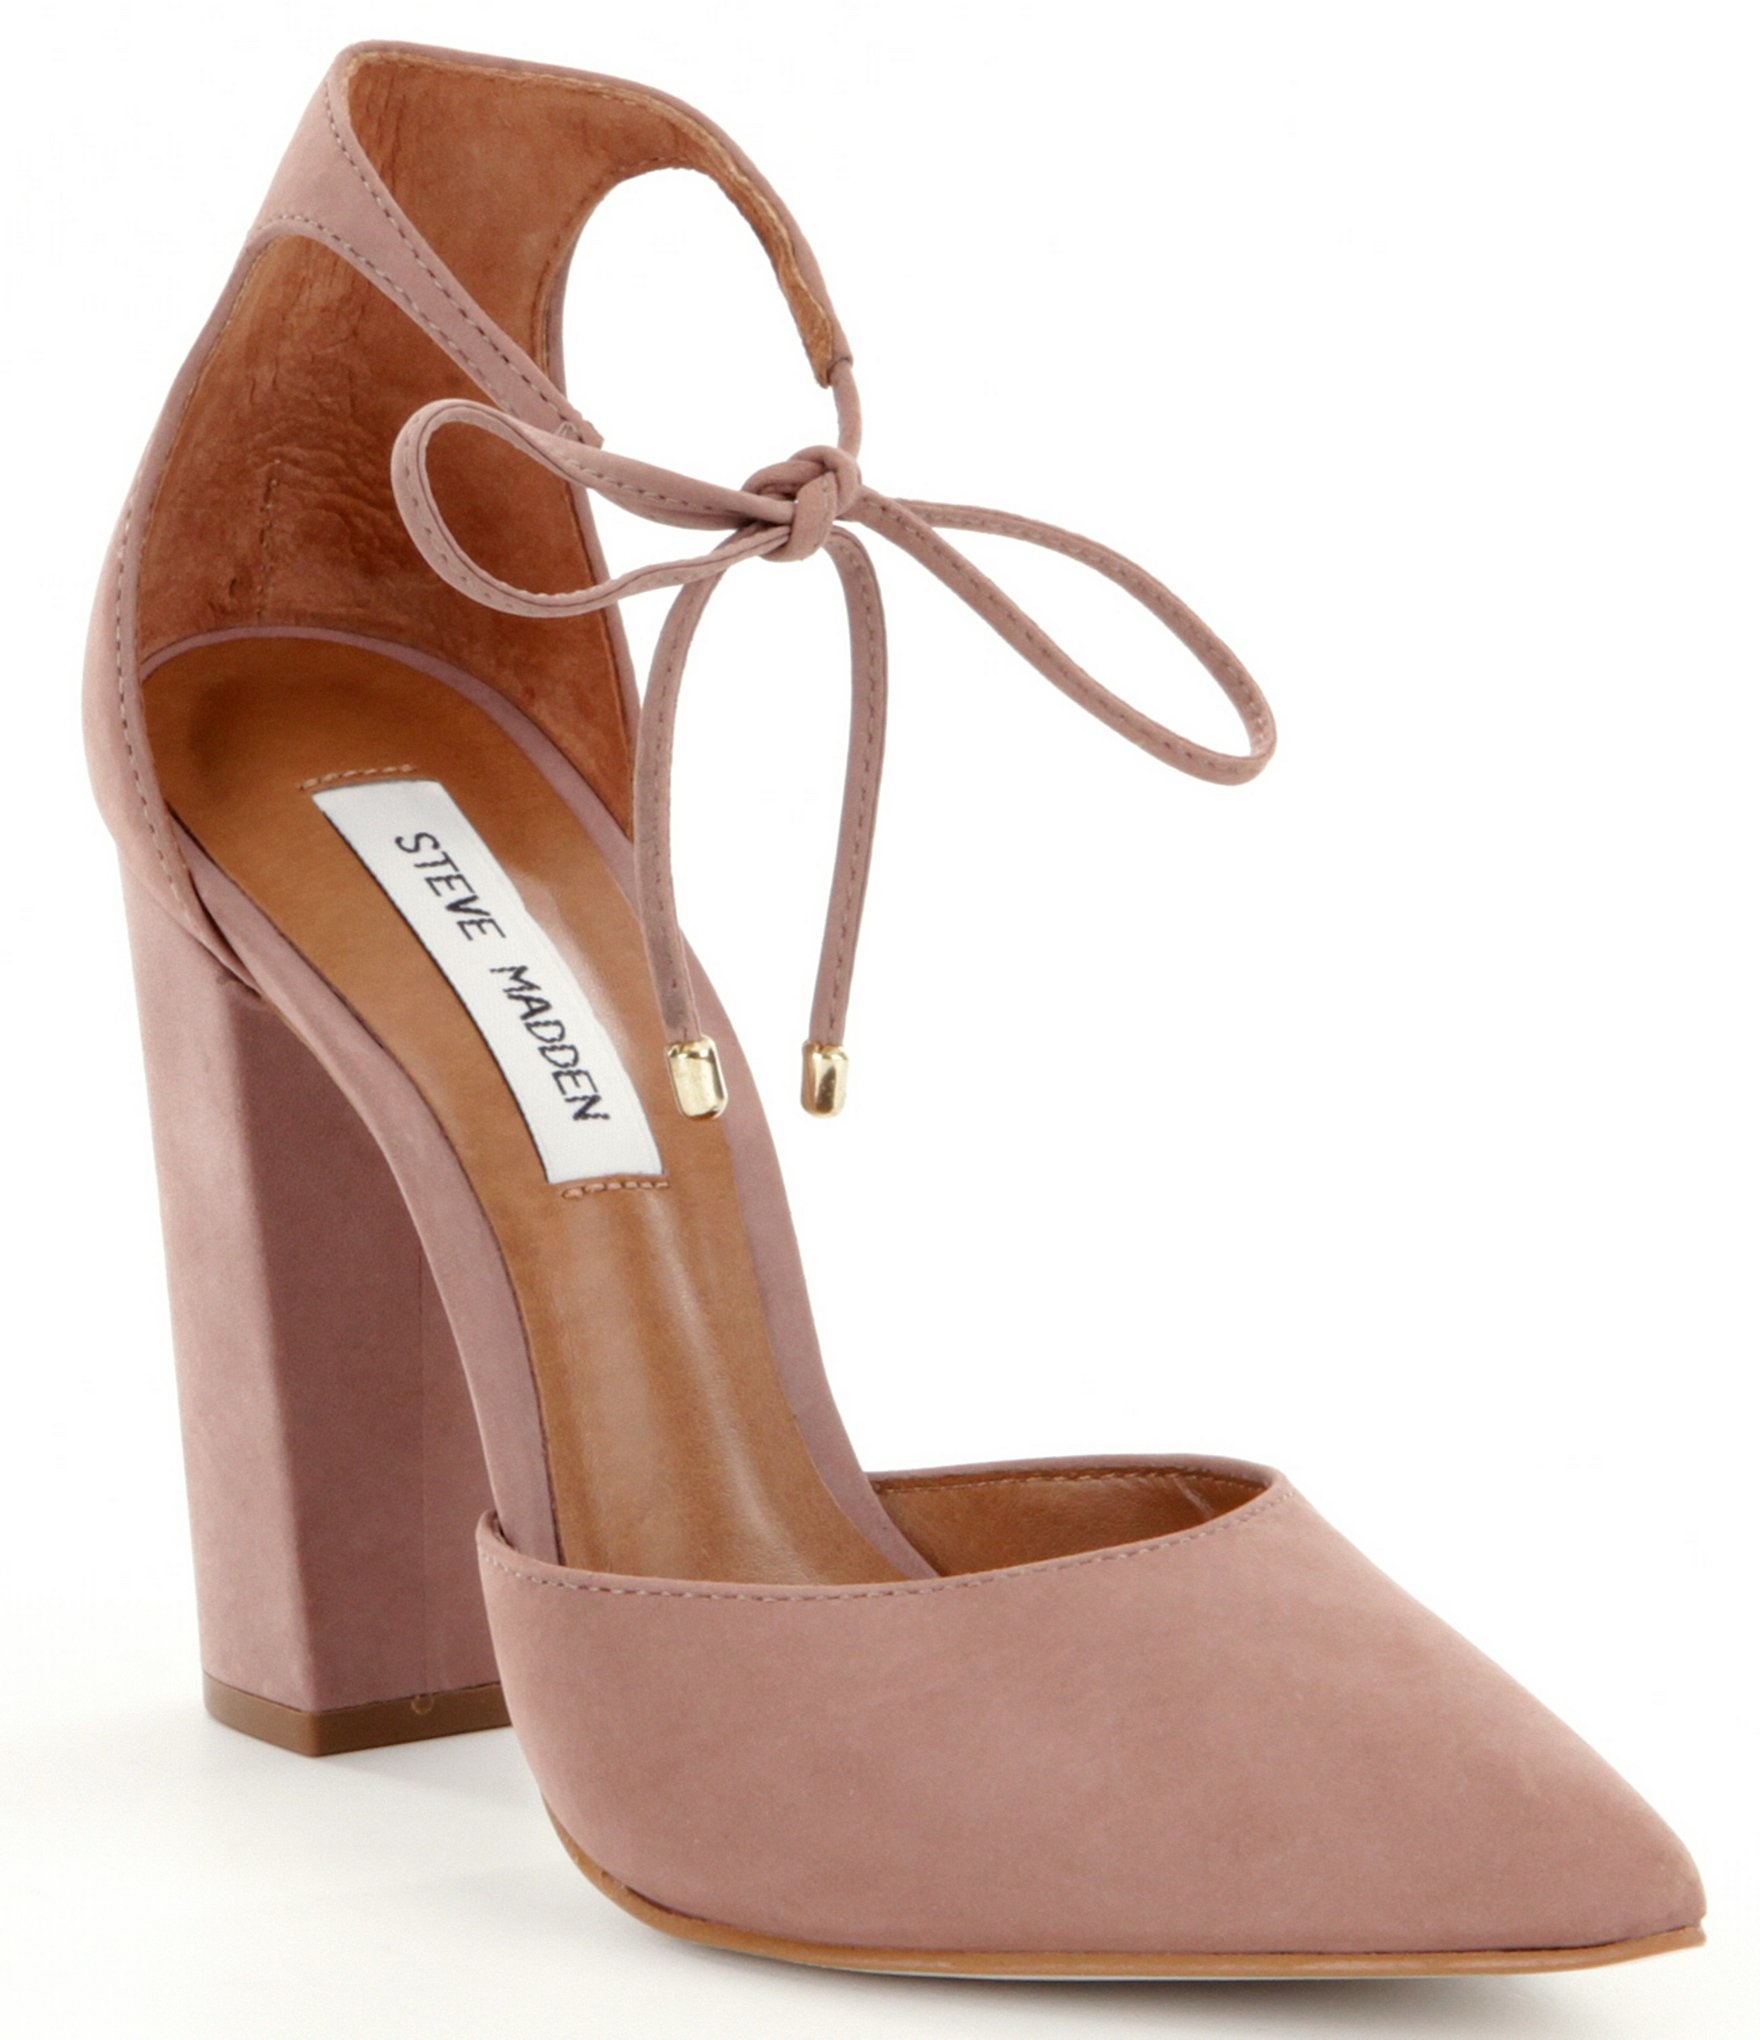 c2ffdfcb752 Lyst - Steve Madden Pampered Pointed-toe Tie Closure Pumps in Pink